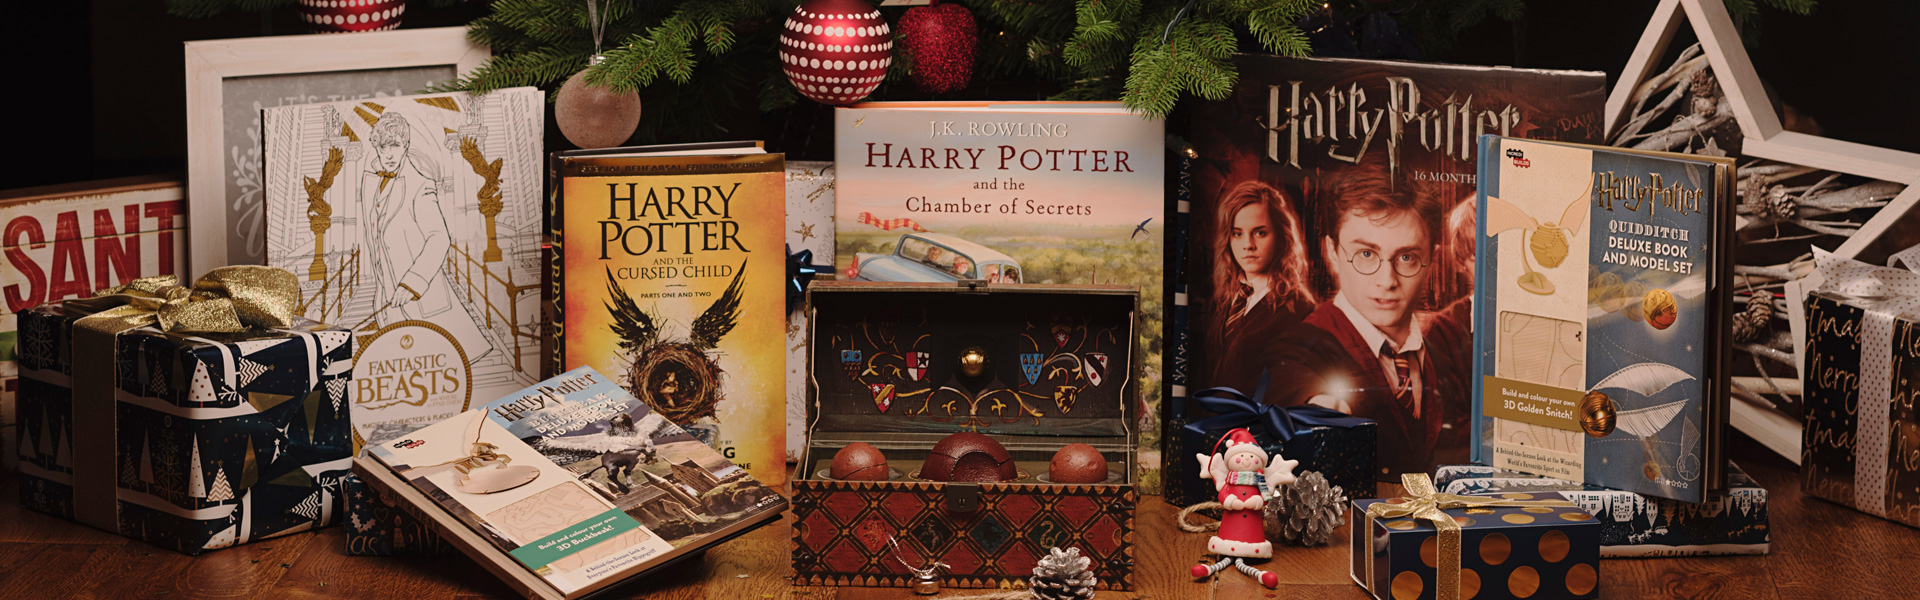 magical gifts